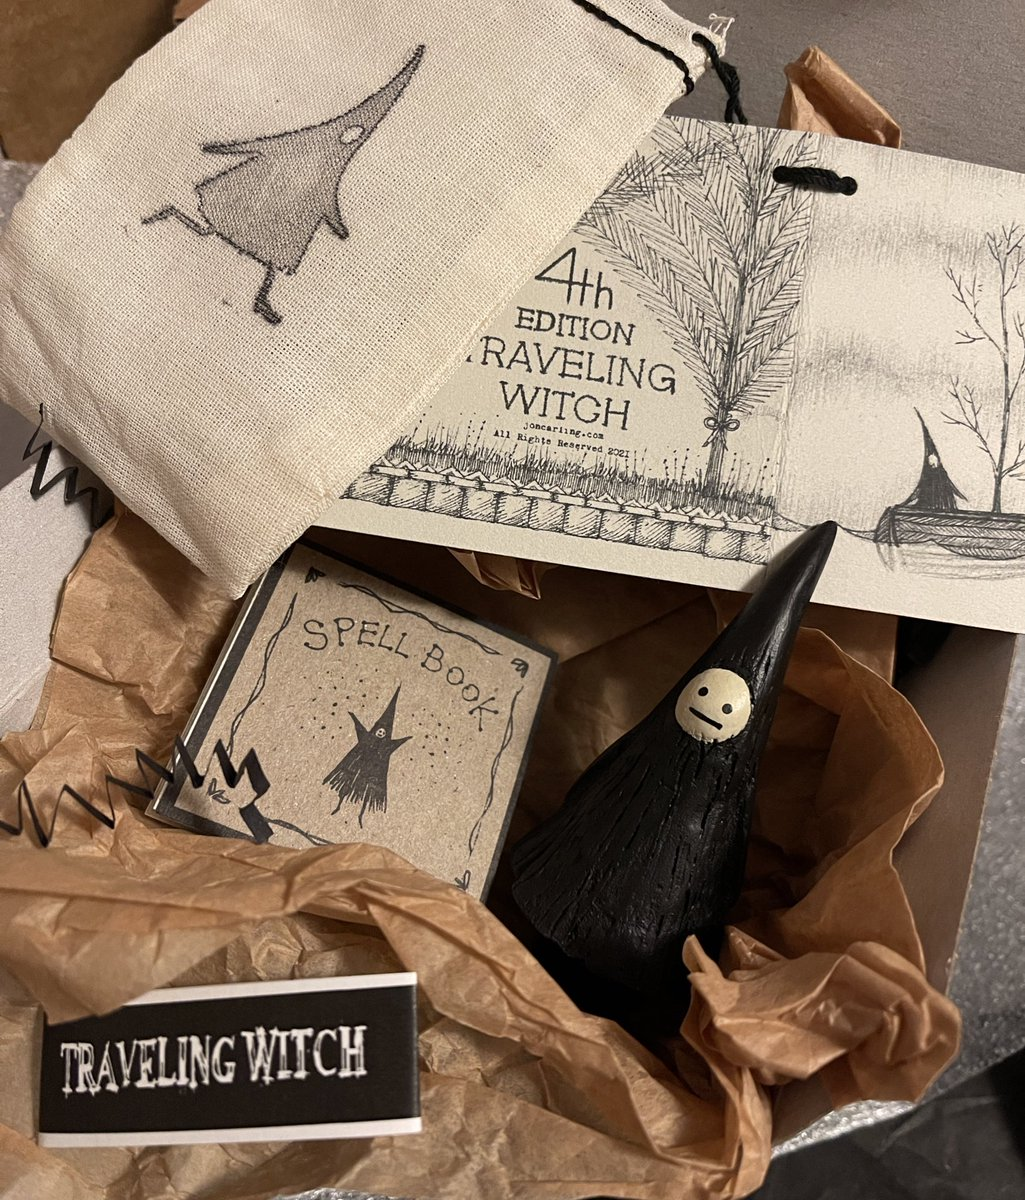 MAIL CALL! Received an awesome package from @JonCarling — my very own #TravelingWitch 🖤 The unboxing is a revelation — customized box, pin, paper goodies, stickers, Spell Book!, black shred and a tiny witch in a bag. 🧙🏿♀️